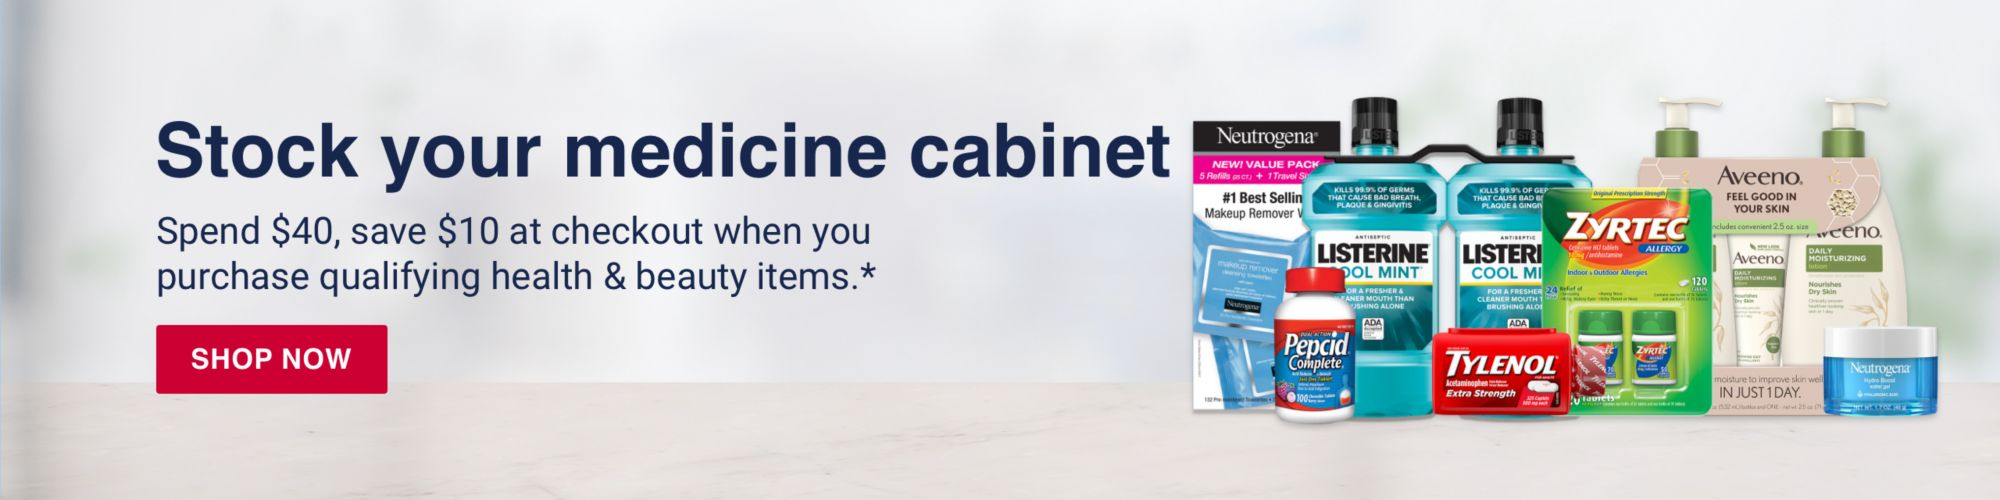 Stock your medicine cabinet. Spend $40, save $10 at checkout when you purchase qualifying health & beauty items.